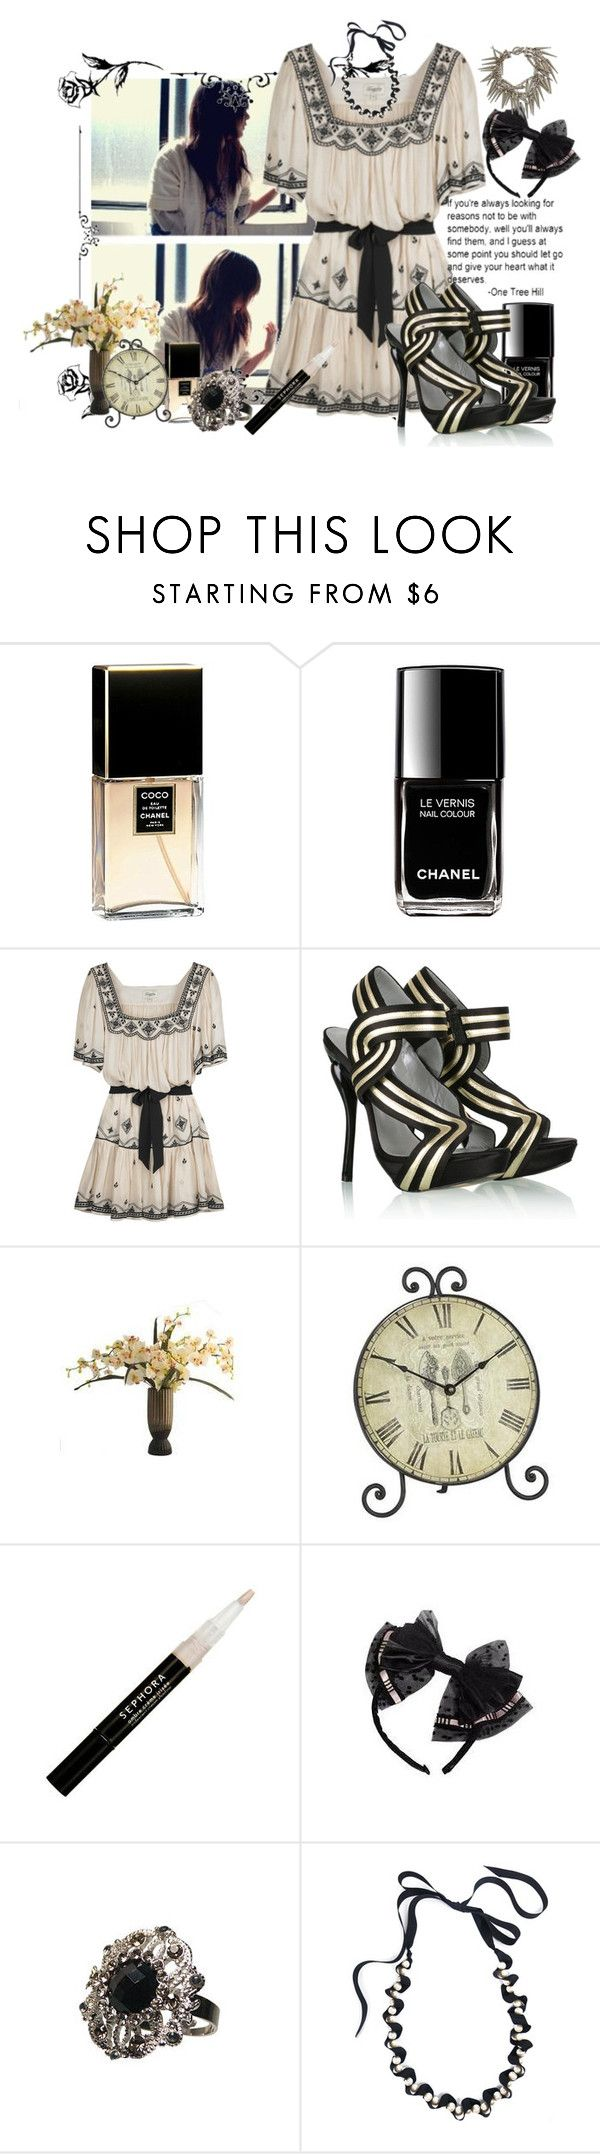 """""""Untitled"""" by e-m-i-l-y-71 ❤ liked on Polyvore featuring Chanel, Temperley London, Terry de Havilland, Sephora Collection and Ben-Amun"""